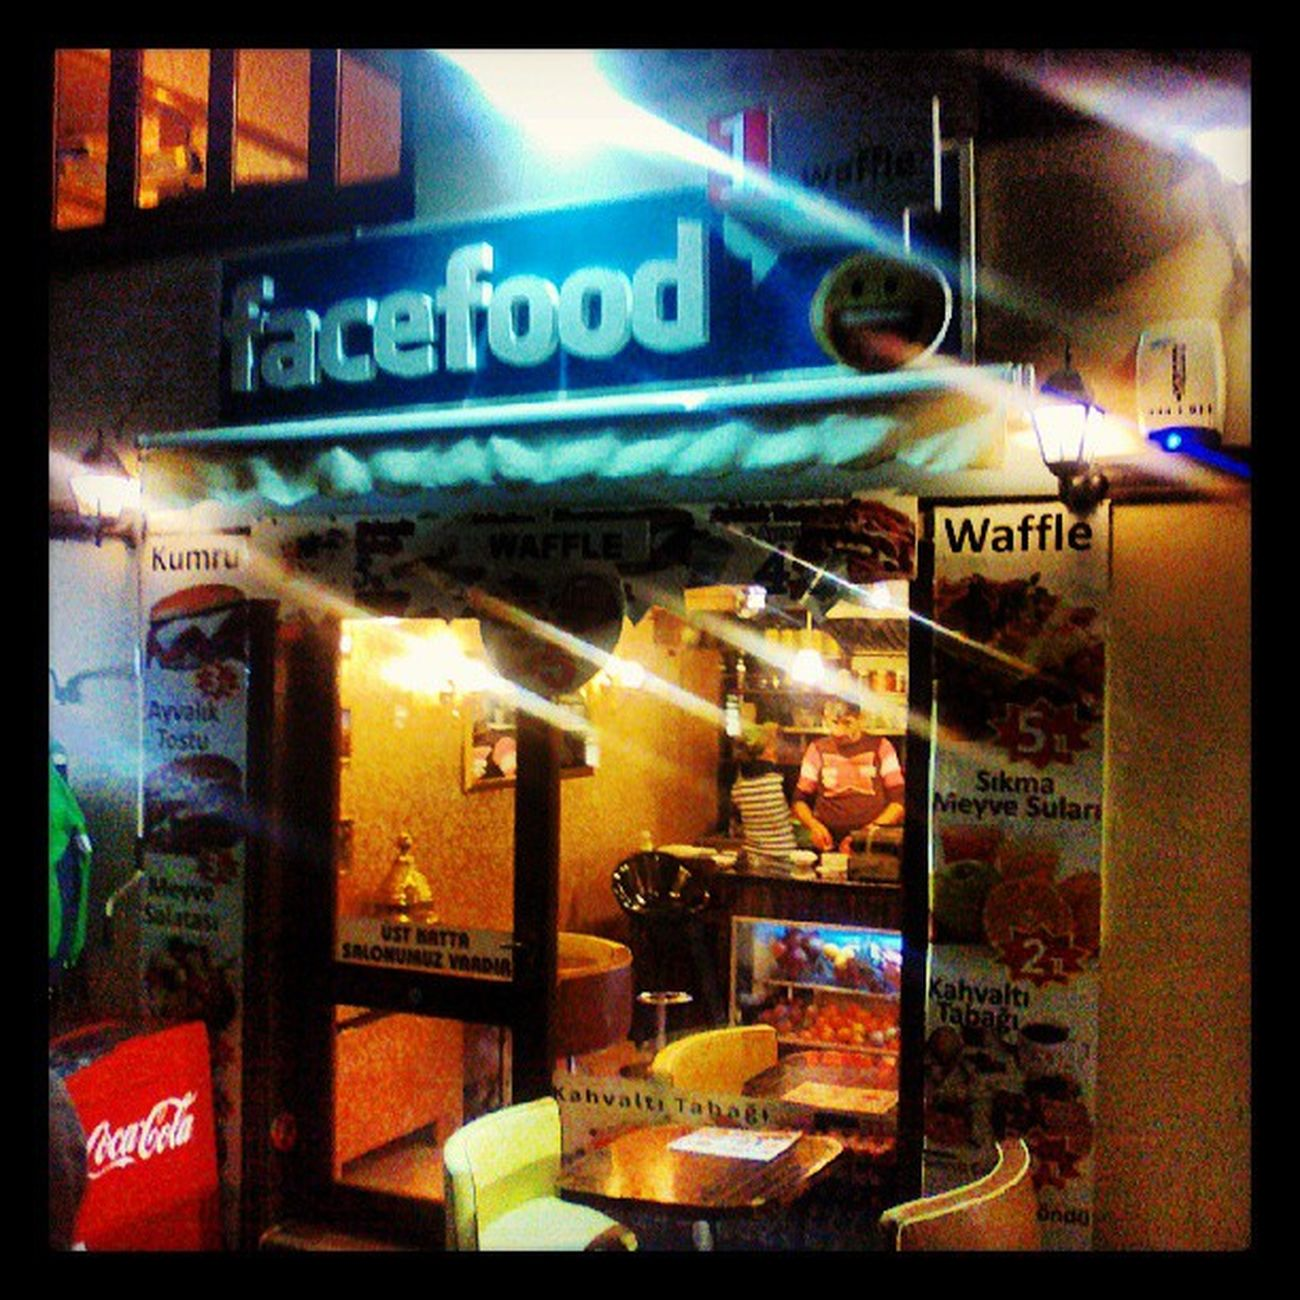 Bursa Facefood Face Food instagram